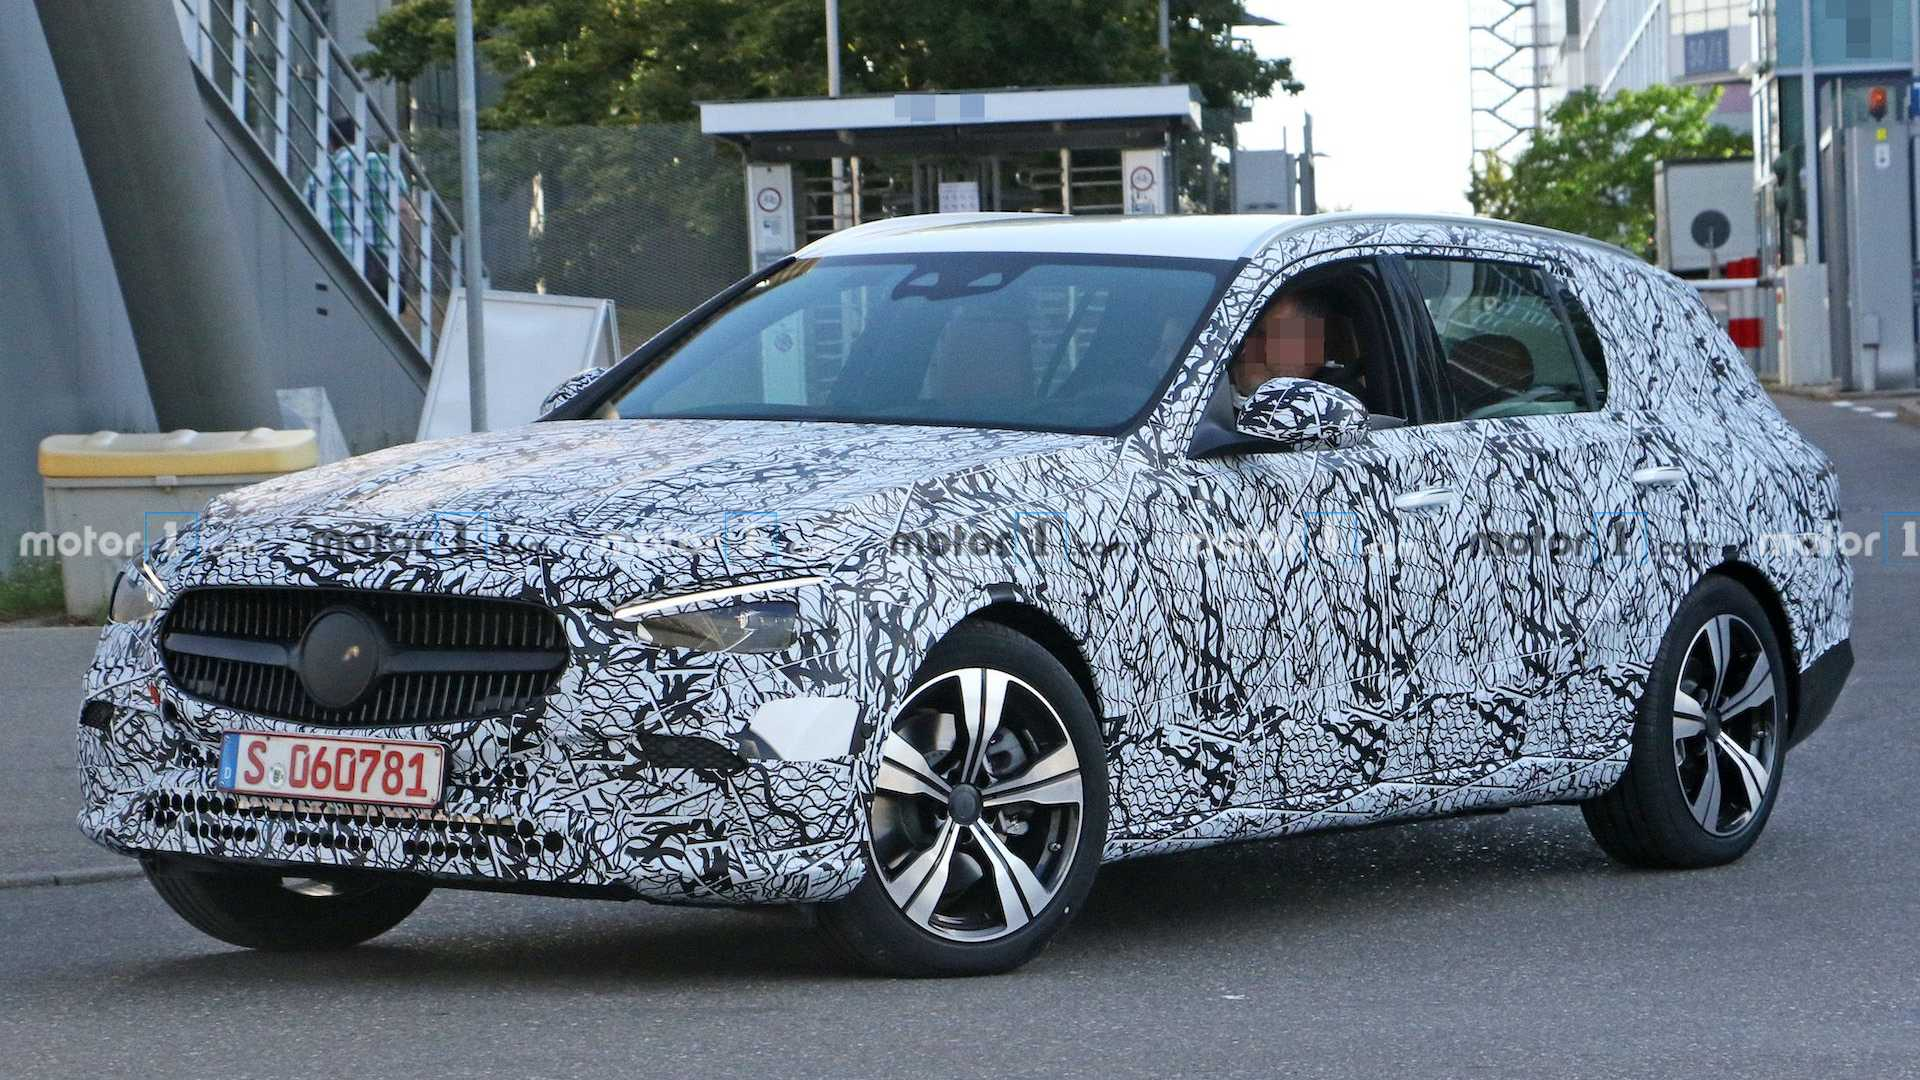 2021 Mercedes C-Class Estate Spied With Dual-Screen Interior - Motor1